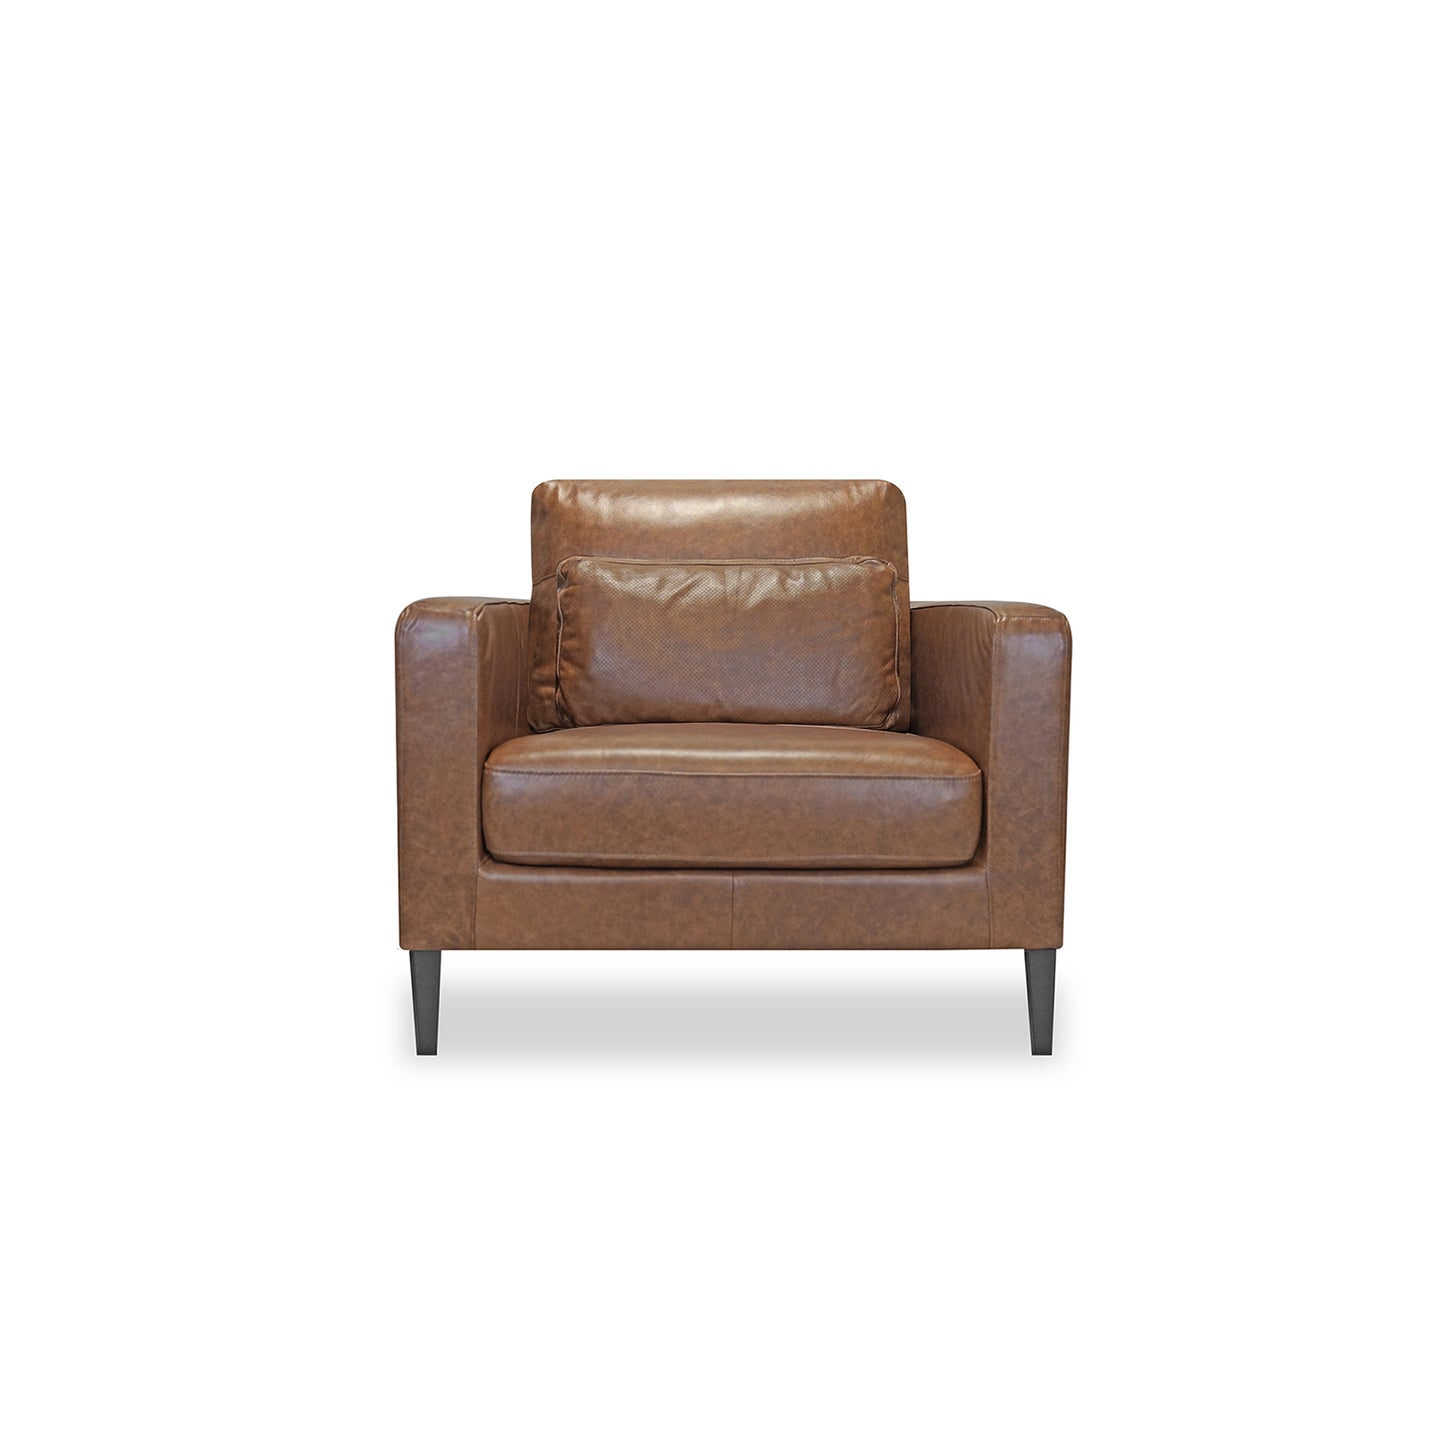 HILTON LEATHER CHAIR